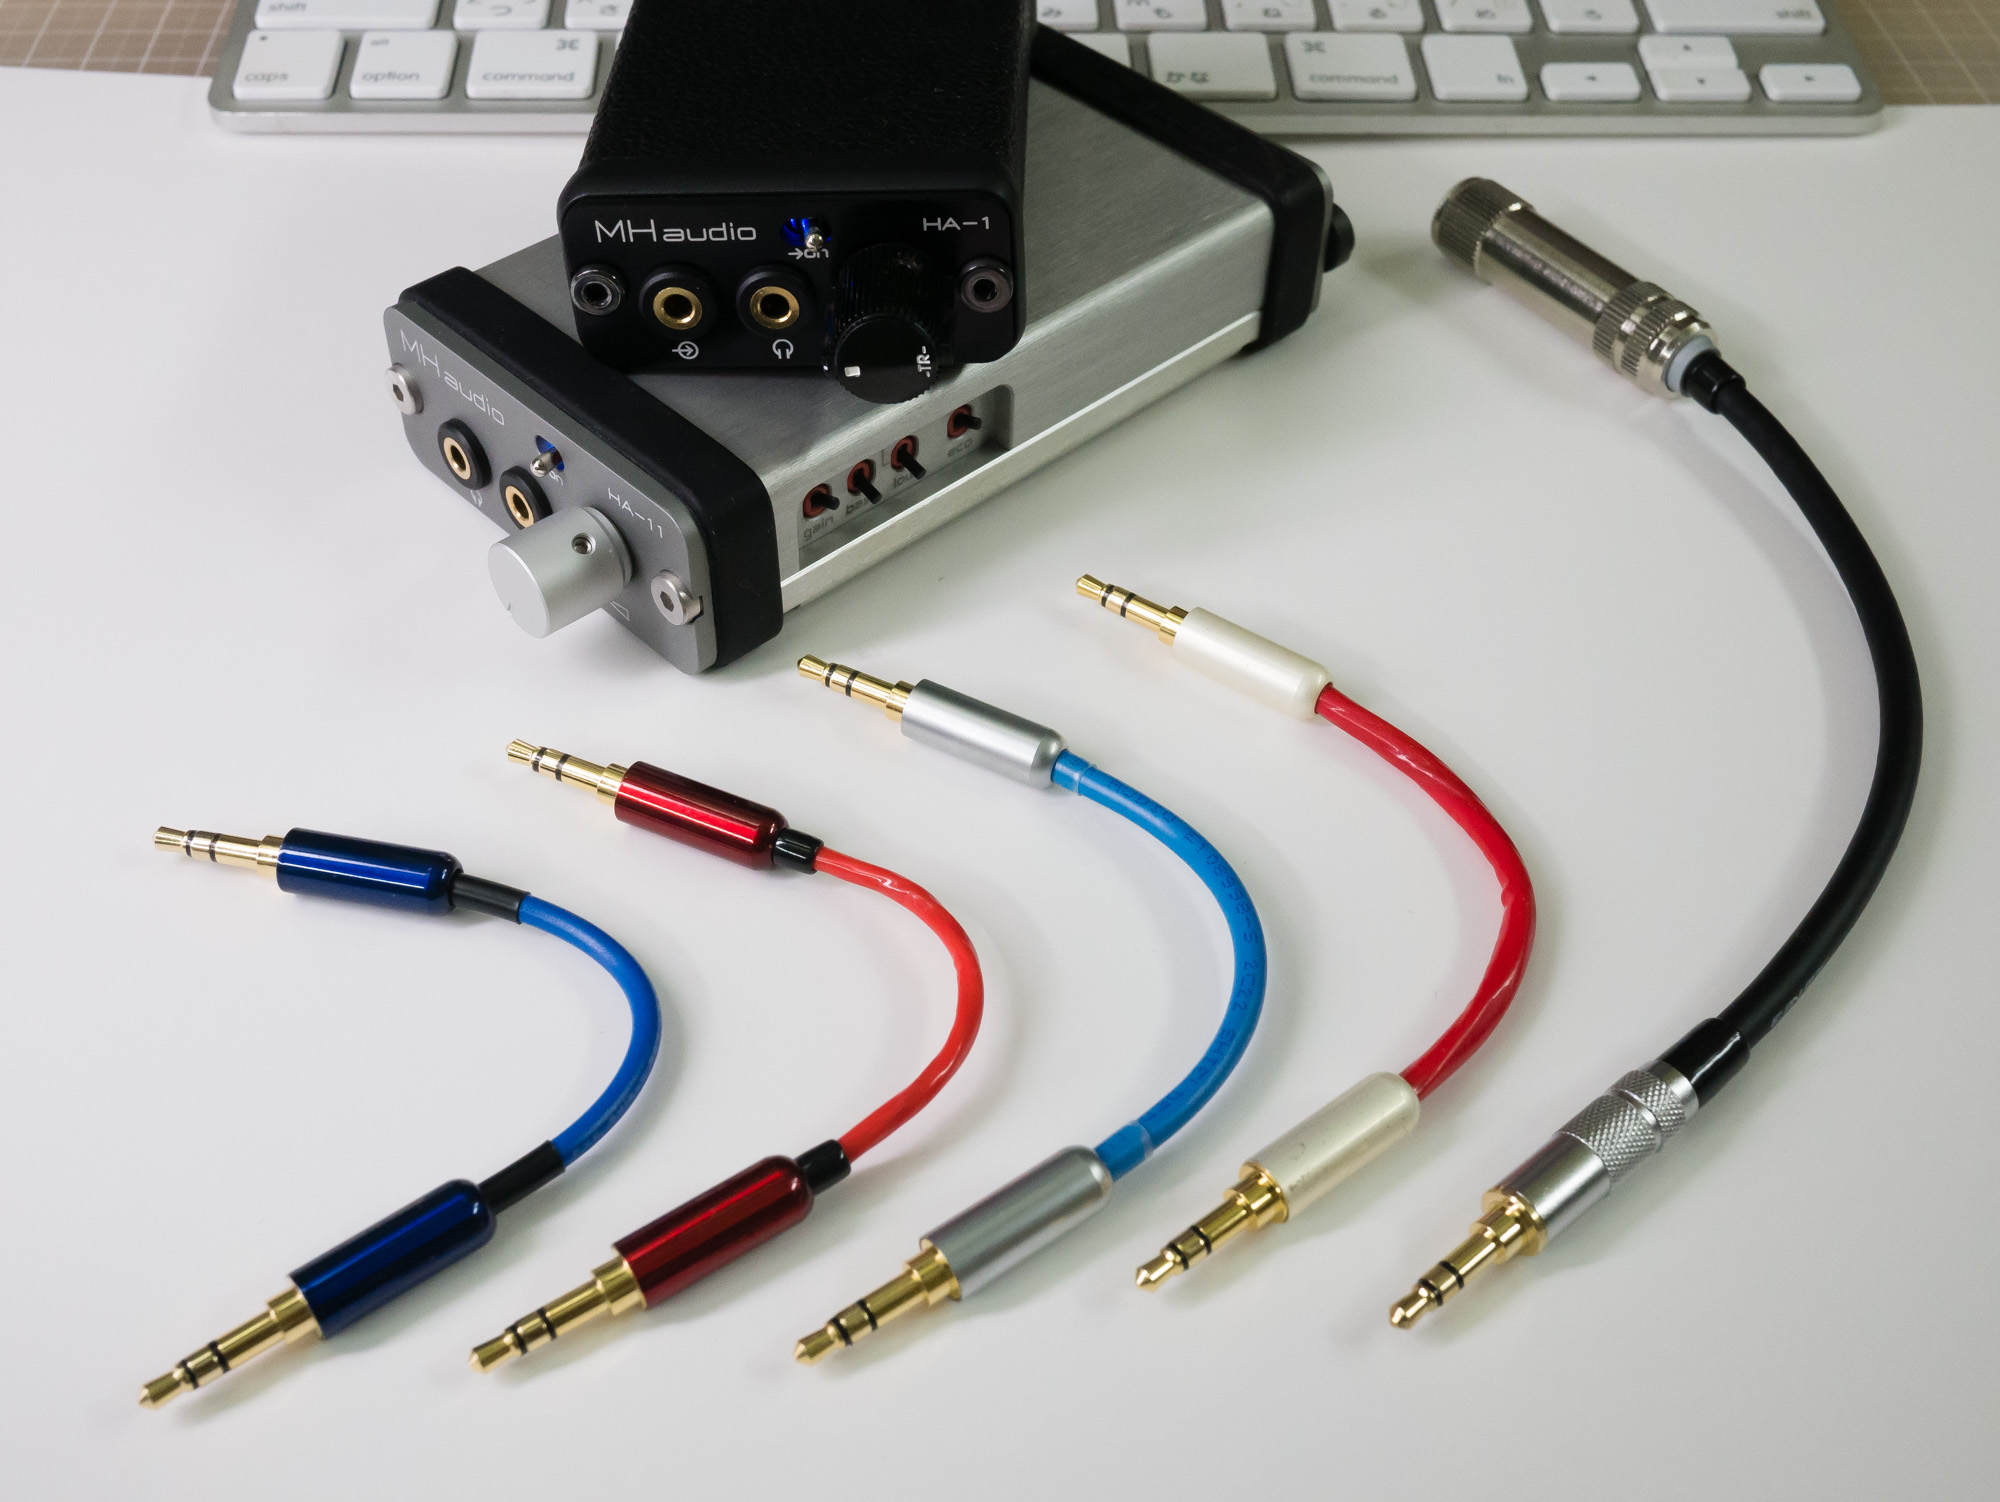 MH audio original line cables